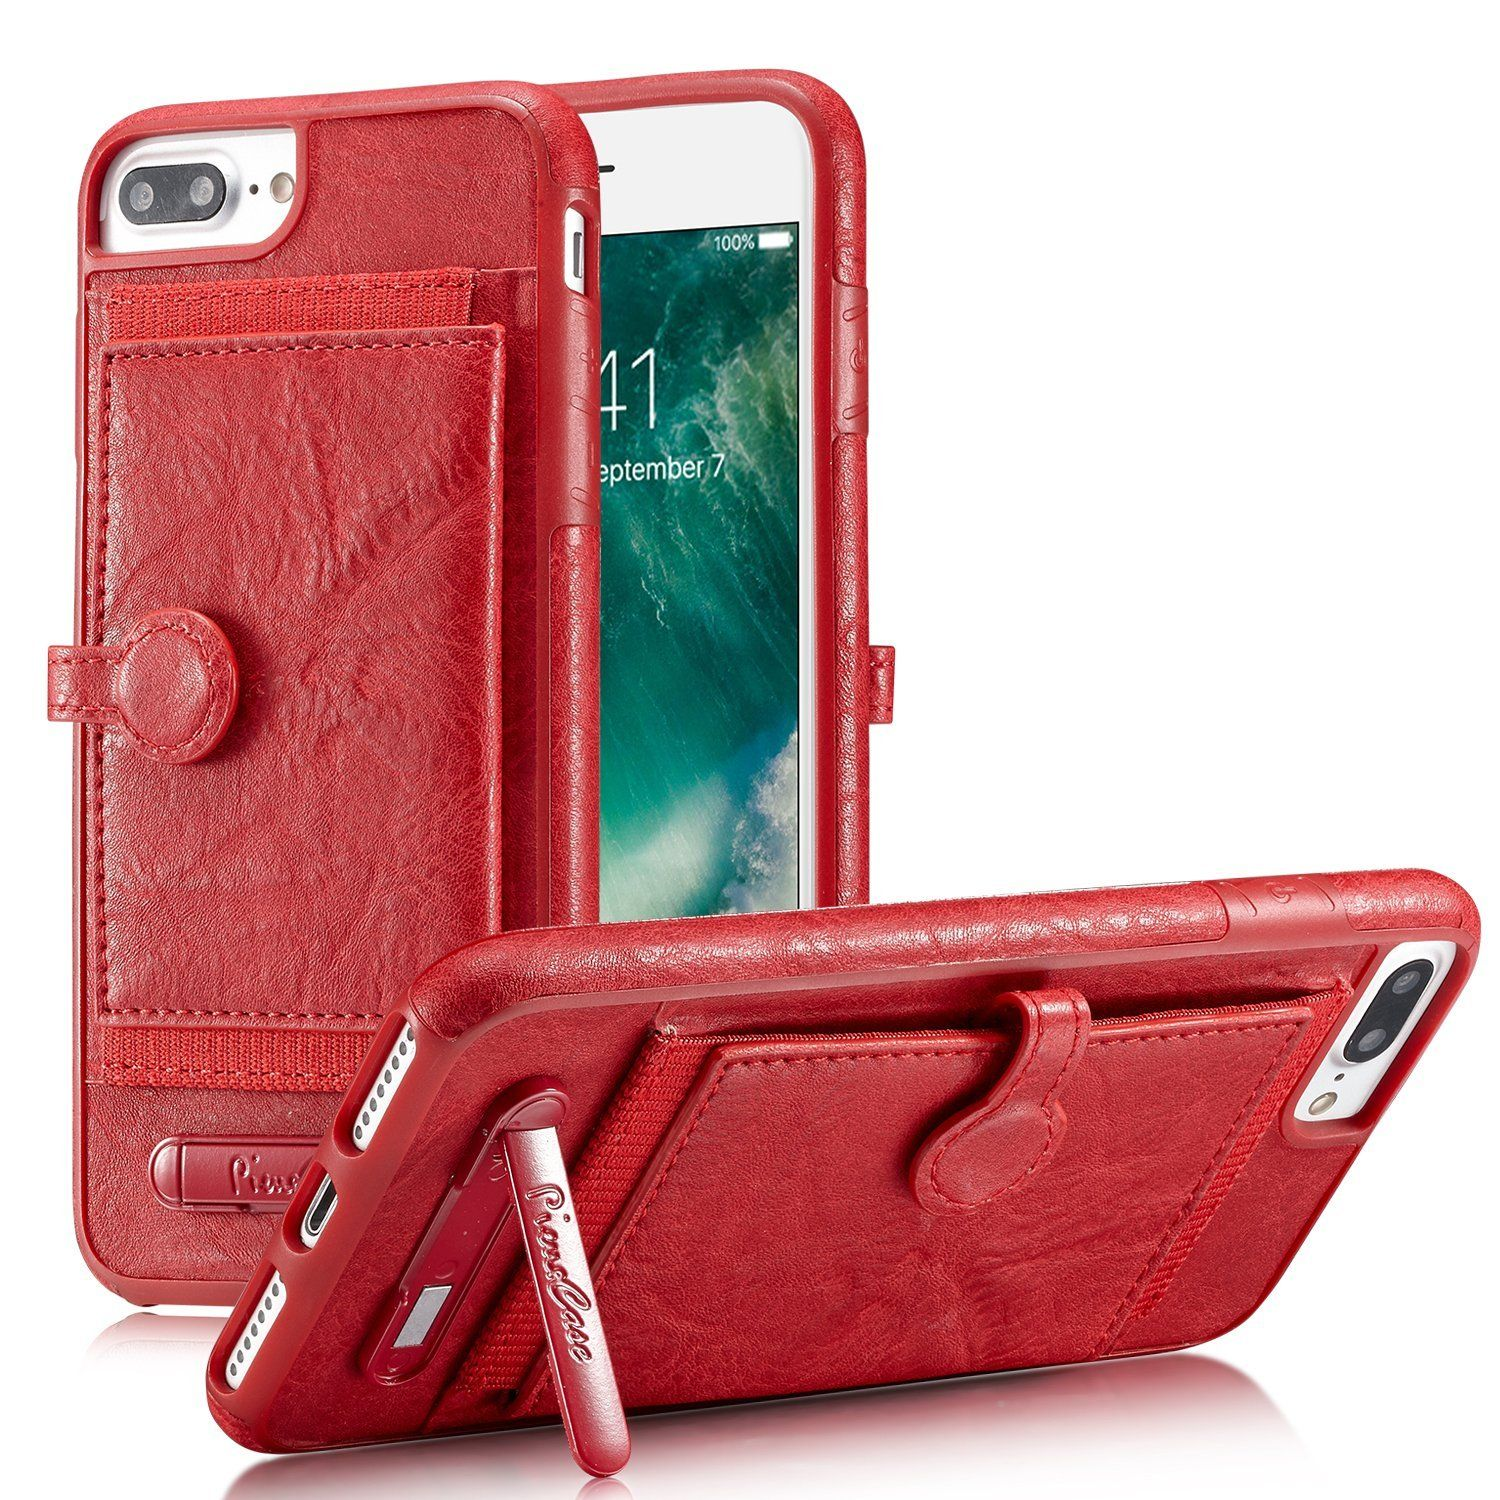 on sale b0885 f7dda iPhone 8 Case iPhone 7 Wallet Case Protective Leather Cases ...